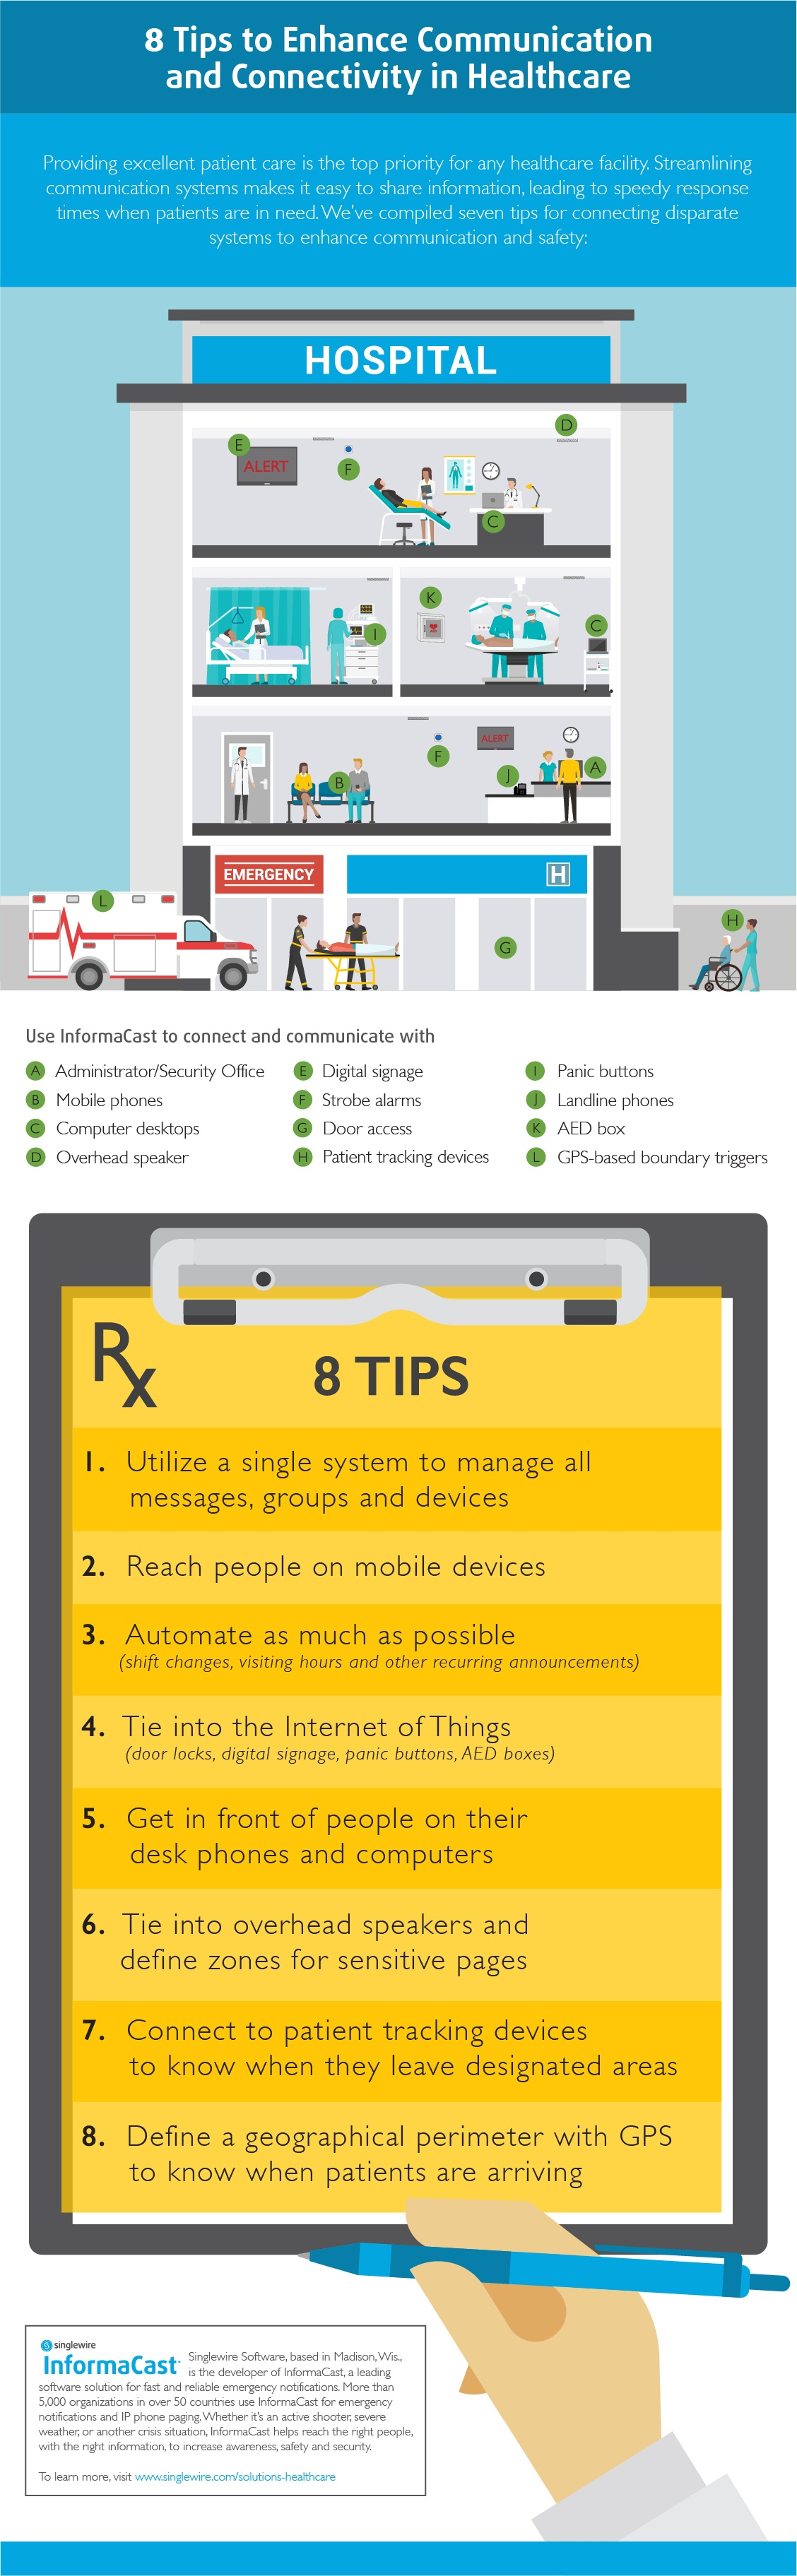 Healthcare-Communication-Infographic.jpg